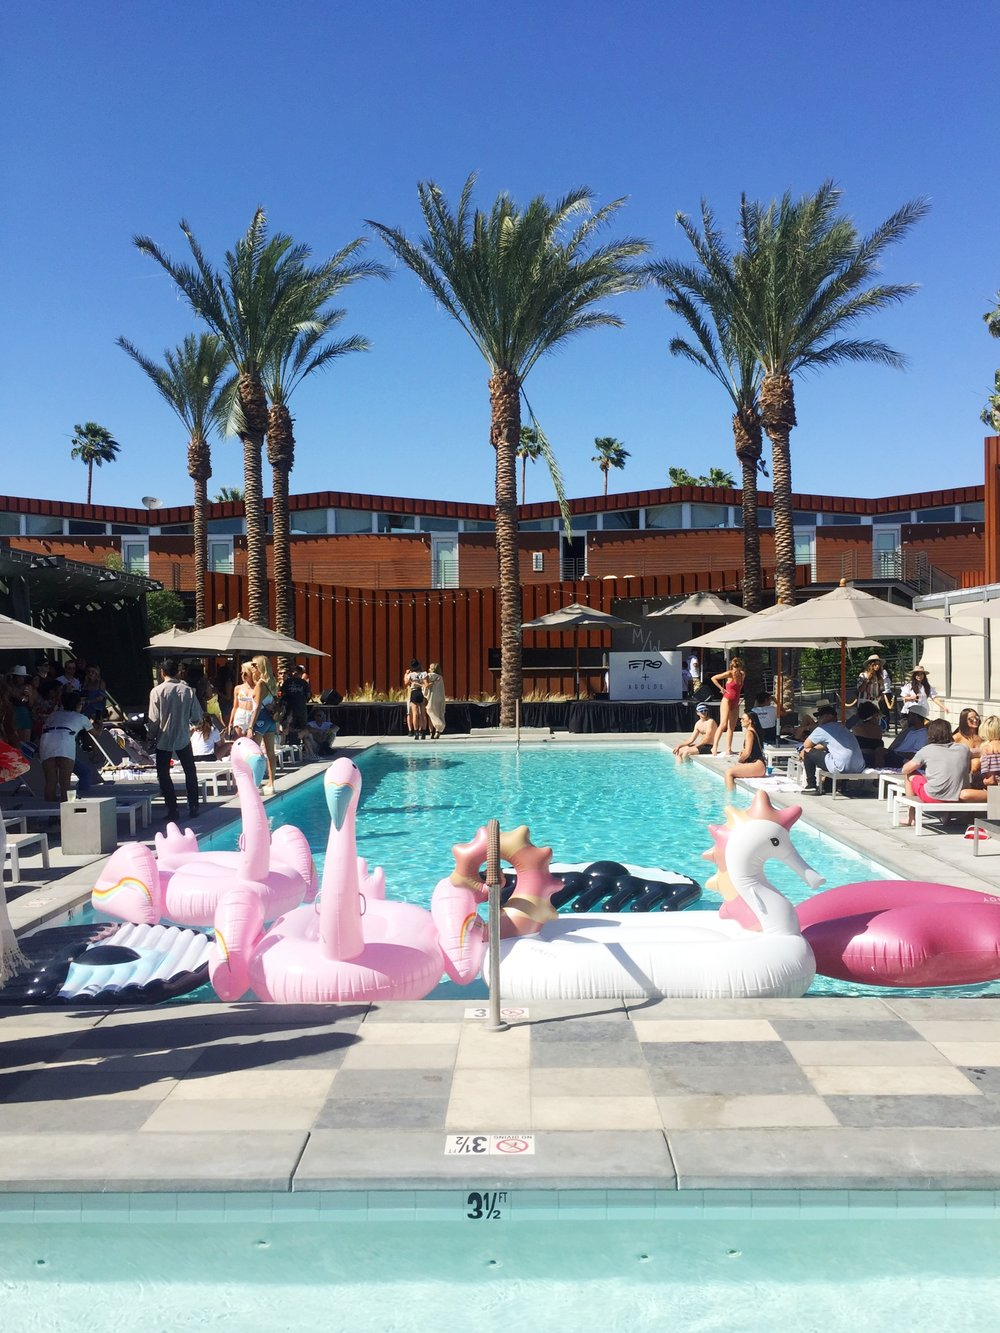 We kicked off Coachella weekend at The Blonde Salad Pool Party at #hotelREVOLVE aka the Arrive Hotel, hosted by blogger Chiara Ferragni with a special performance by rapper A$AP Ferg!